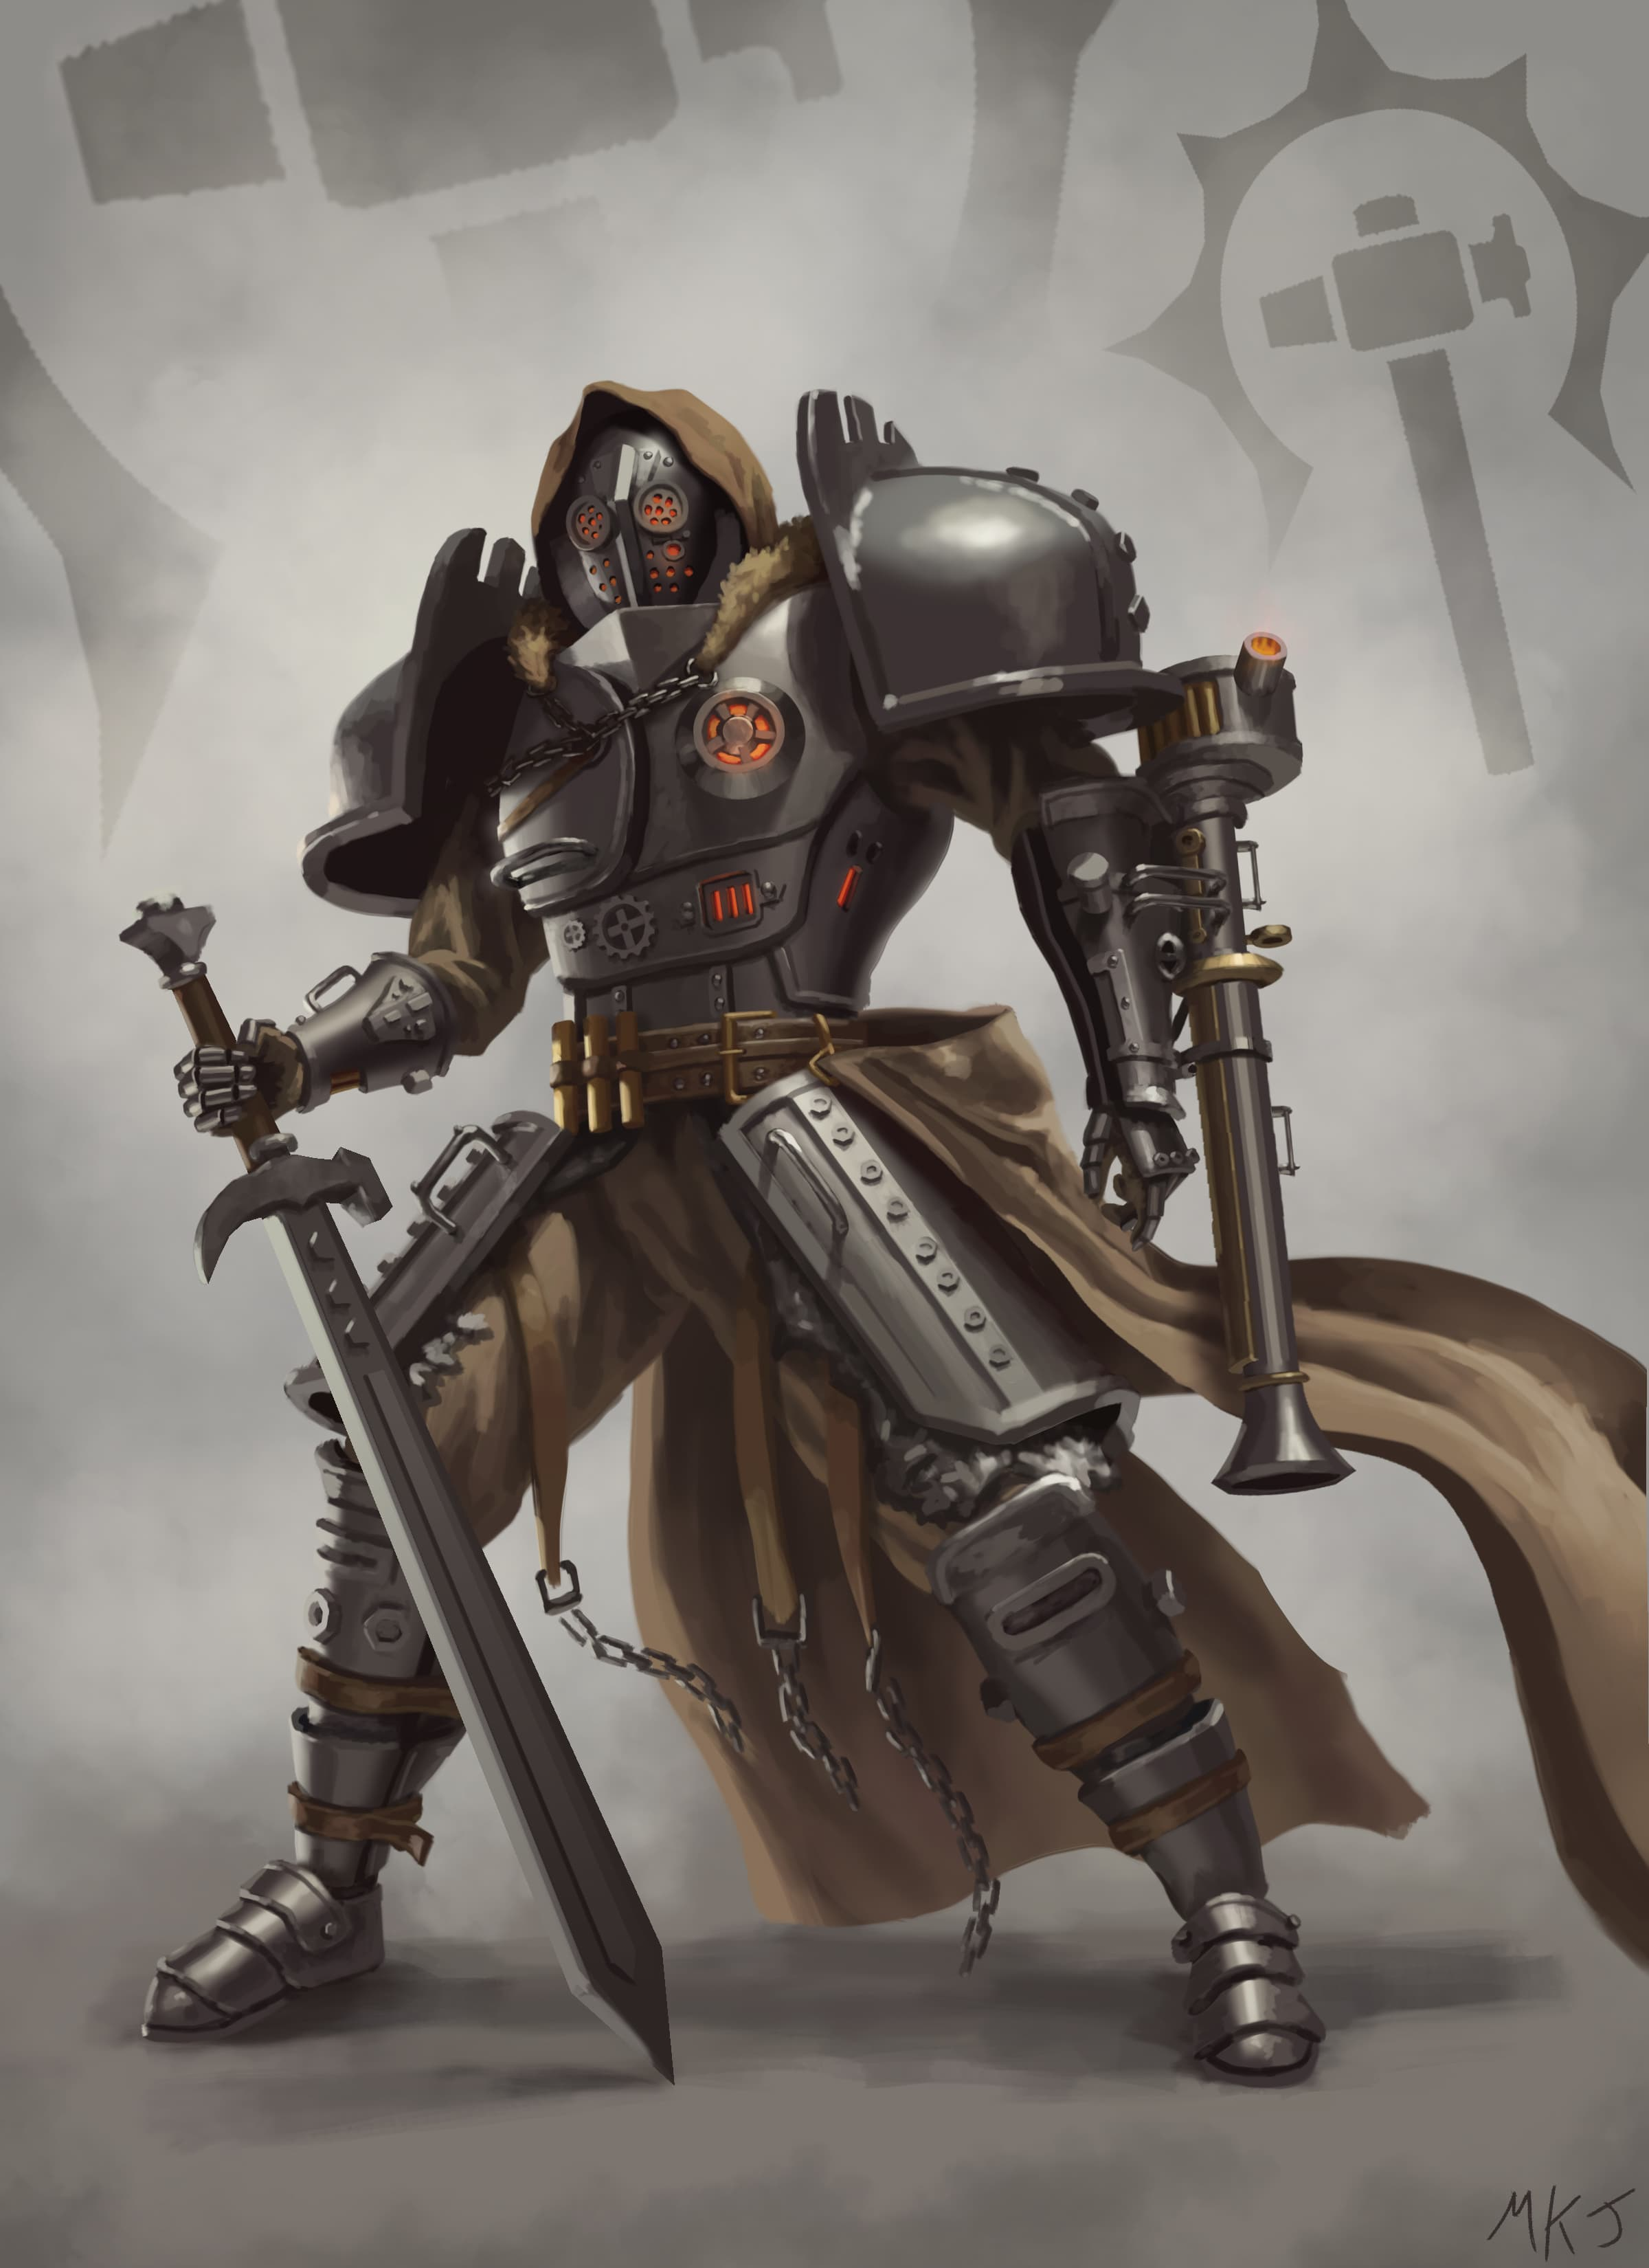 Ithican Empire Medium Praetorian - Ravager - Concept Art